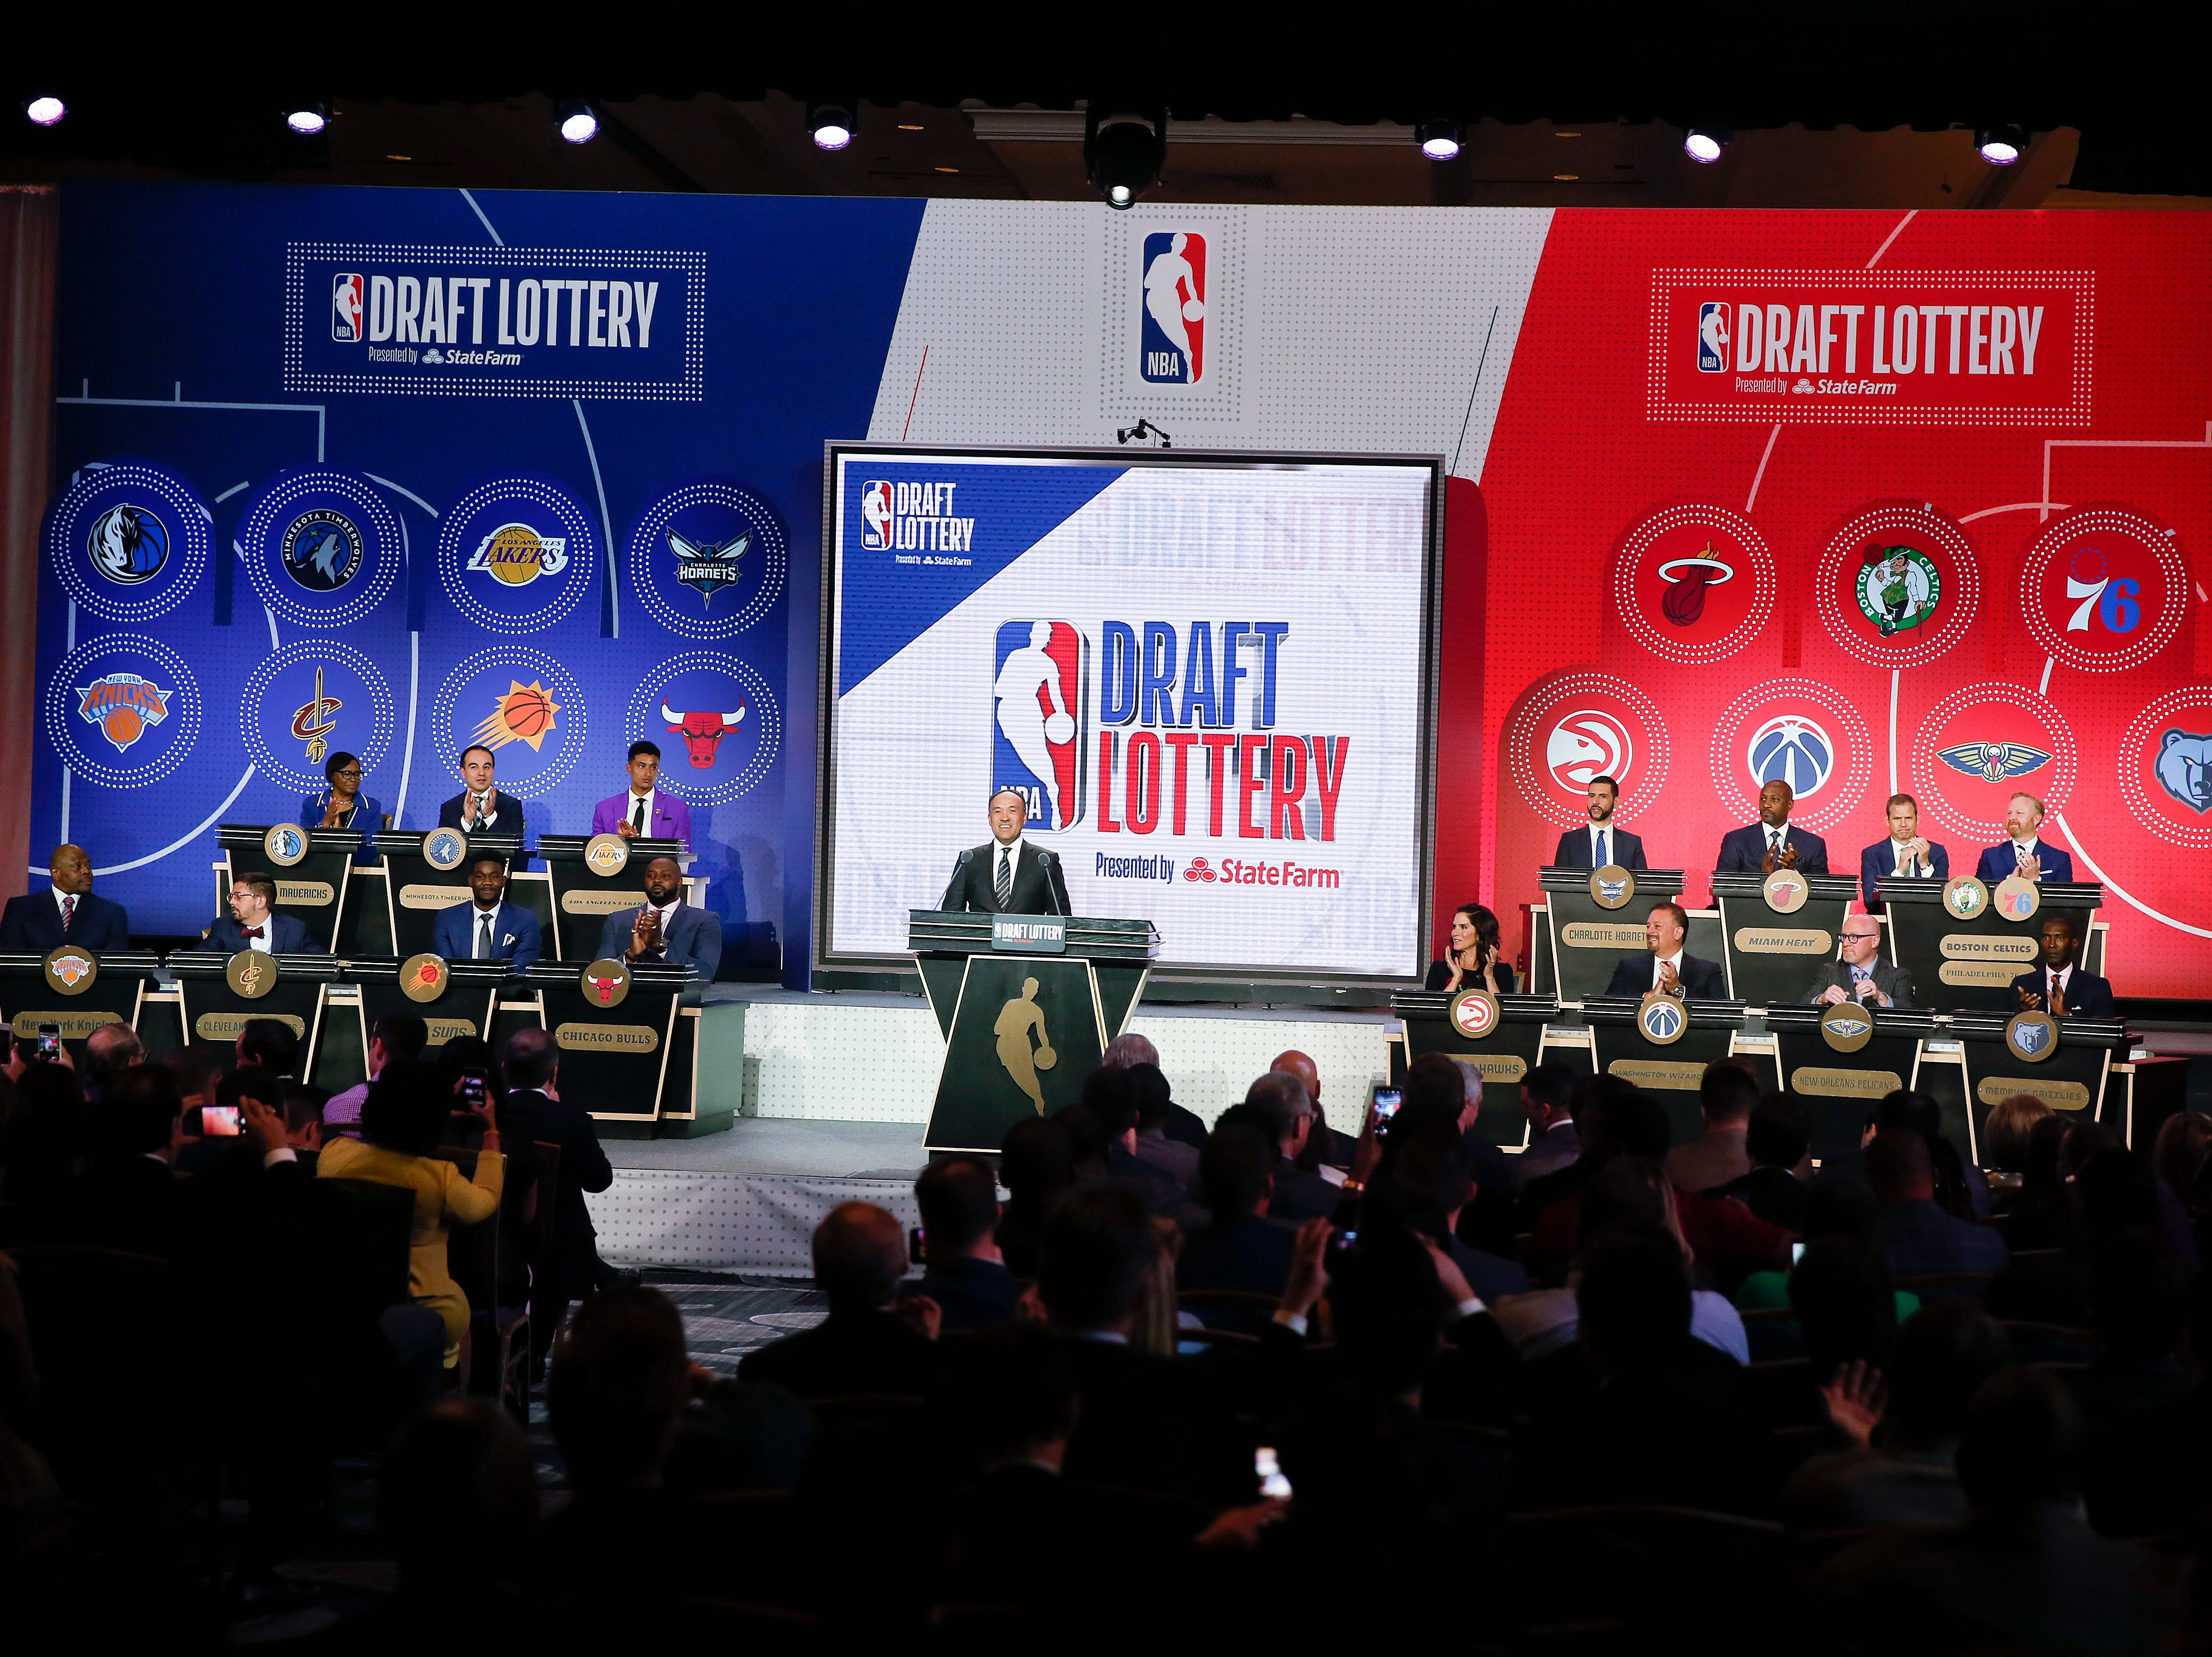 NBA Deputy Commissioner Mark Tatum gets ready to announce the order of the picks during the NBA basketball draft lottery Tuesday, May 14, 2019, in Chicago. (AP Photo/Nuccio DiNuzzo)